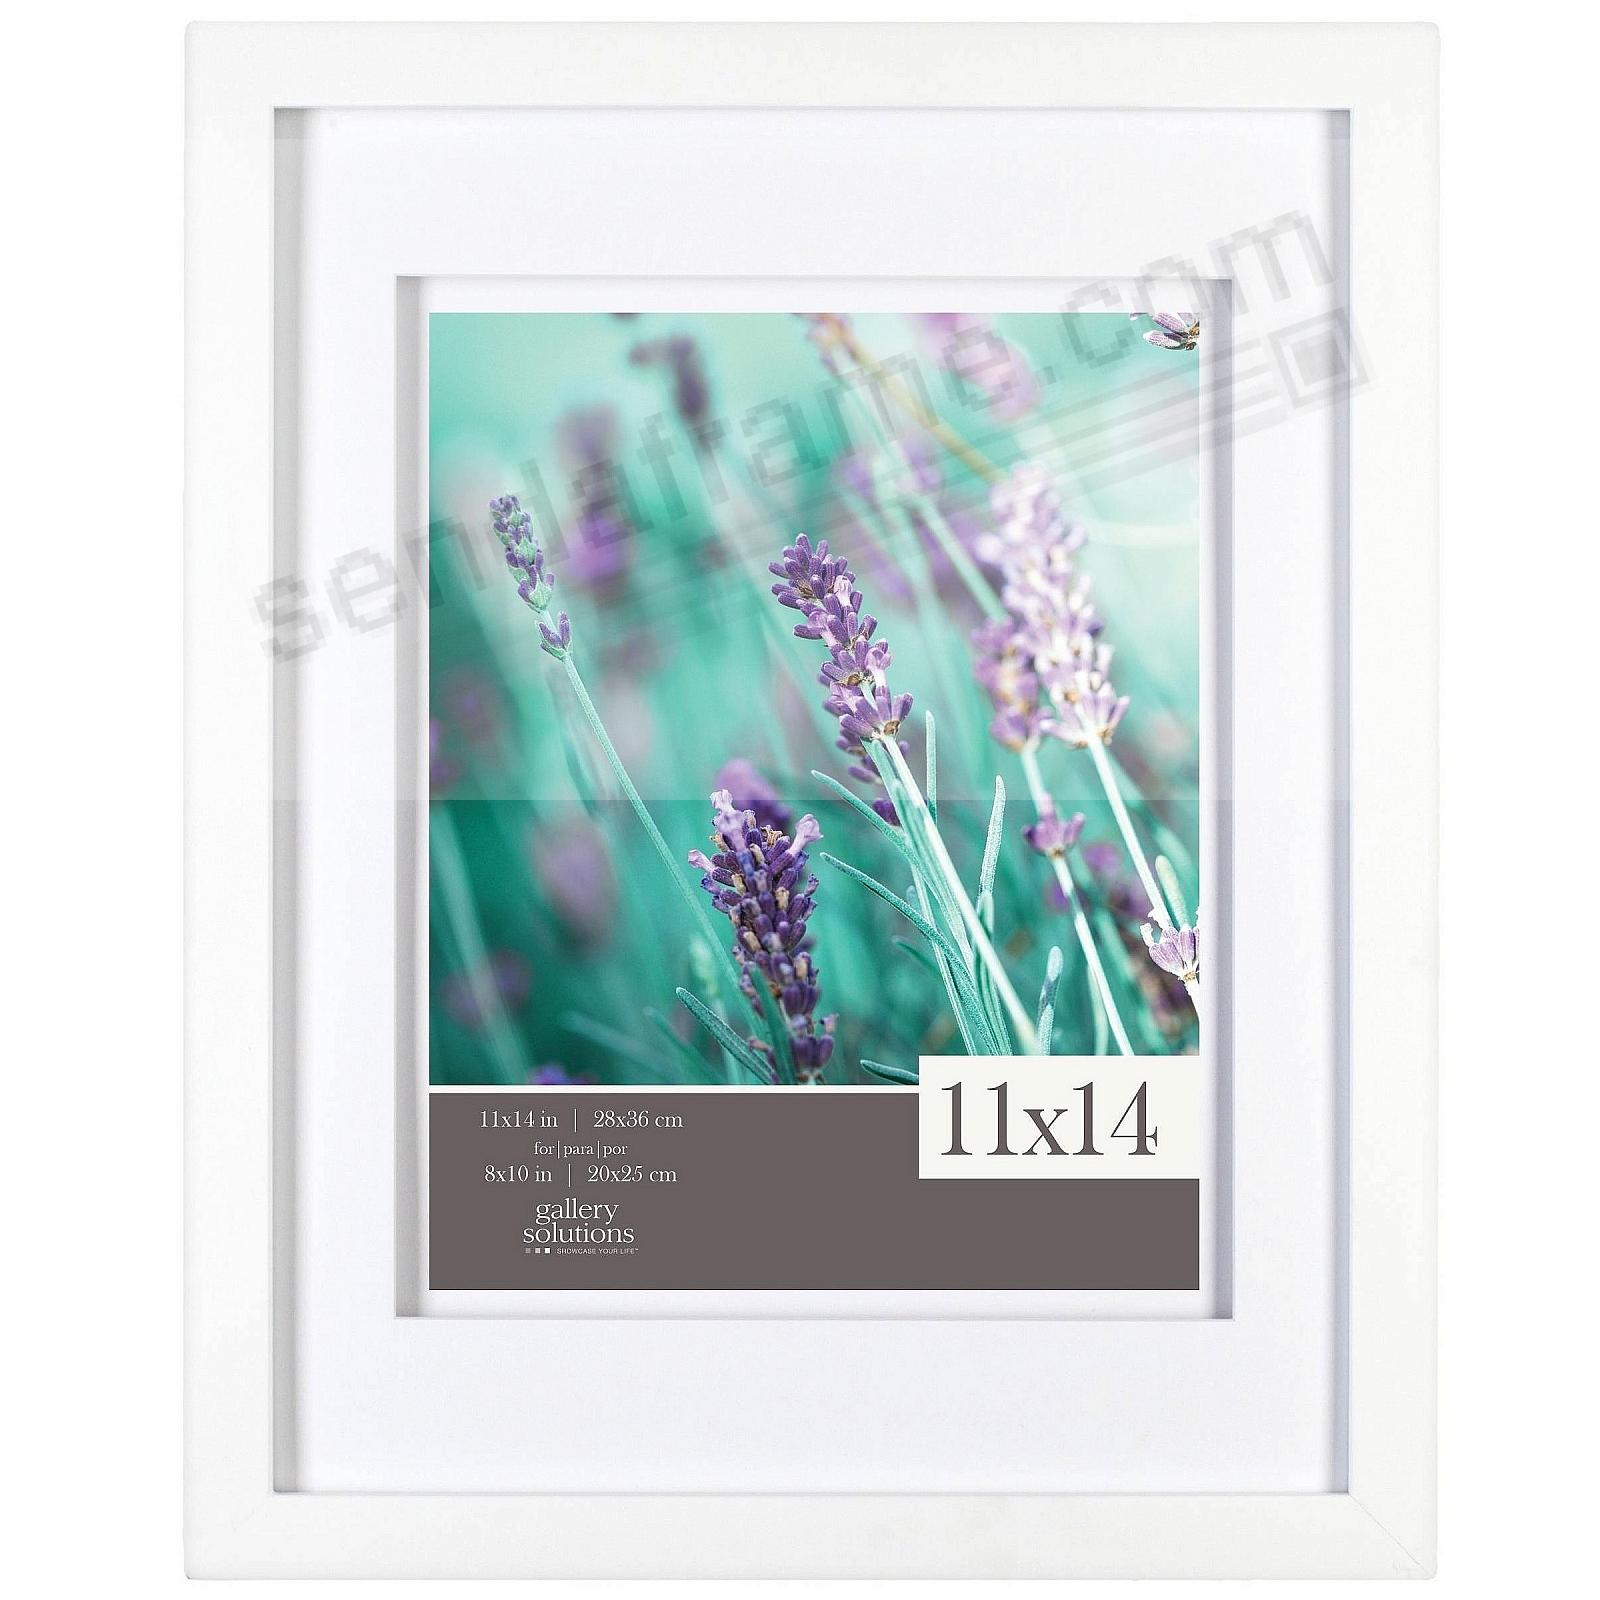 White Wall 11x14/8x10 Frame w/AirFloat White Mat by Gallery Solutions™